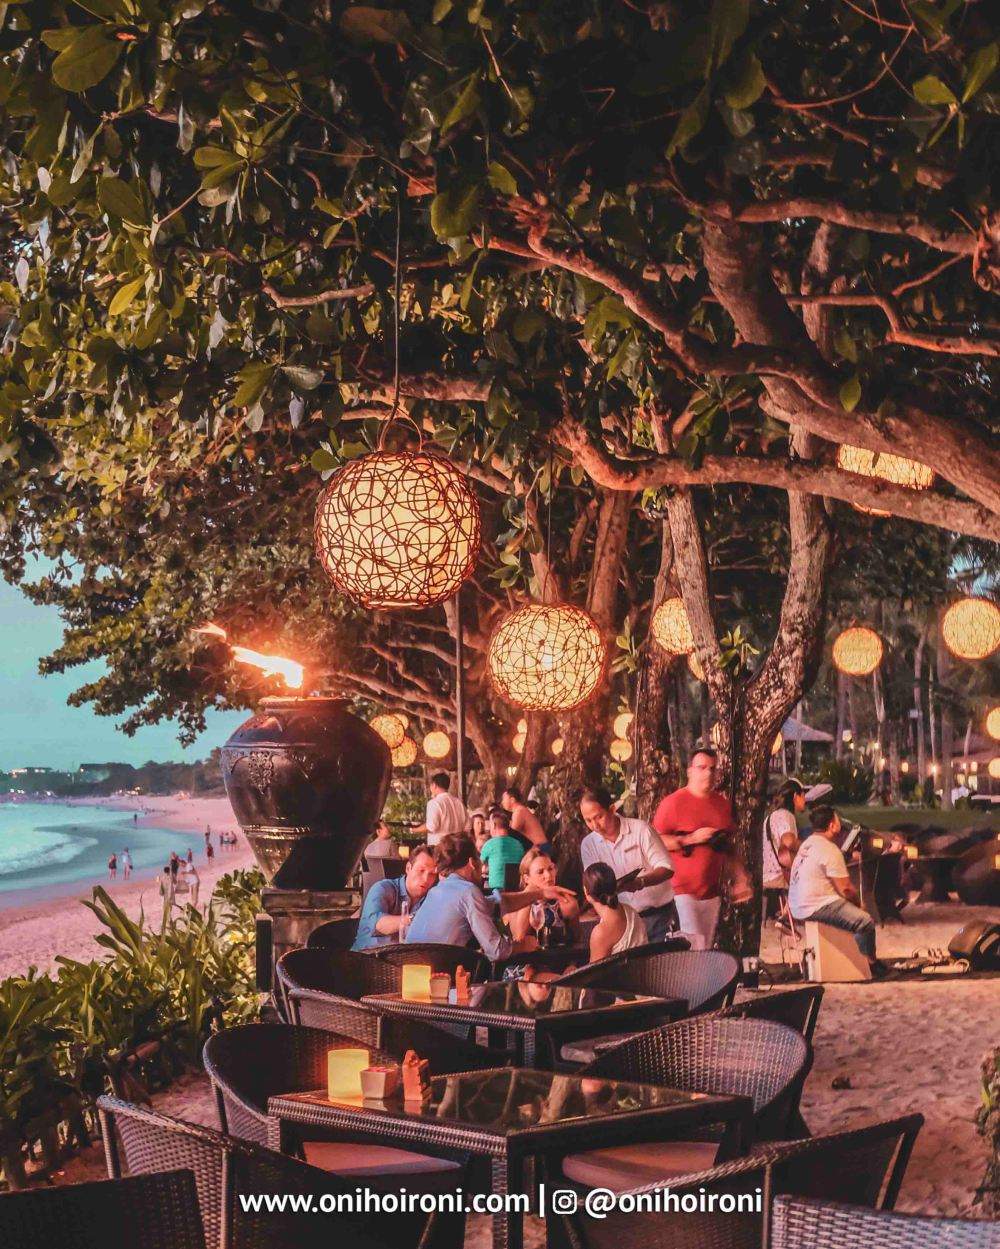 11 Sunset beach bar and grill intercontinental bali resort oni hoironi restaurant di jimbaran copy